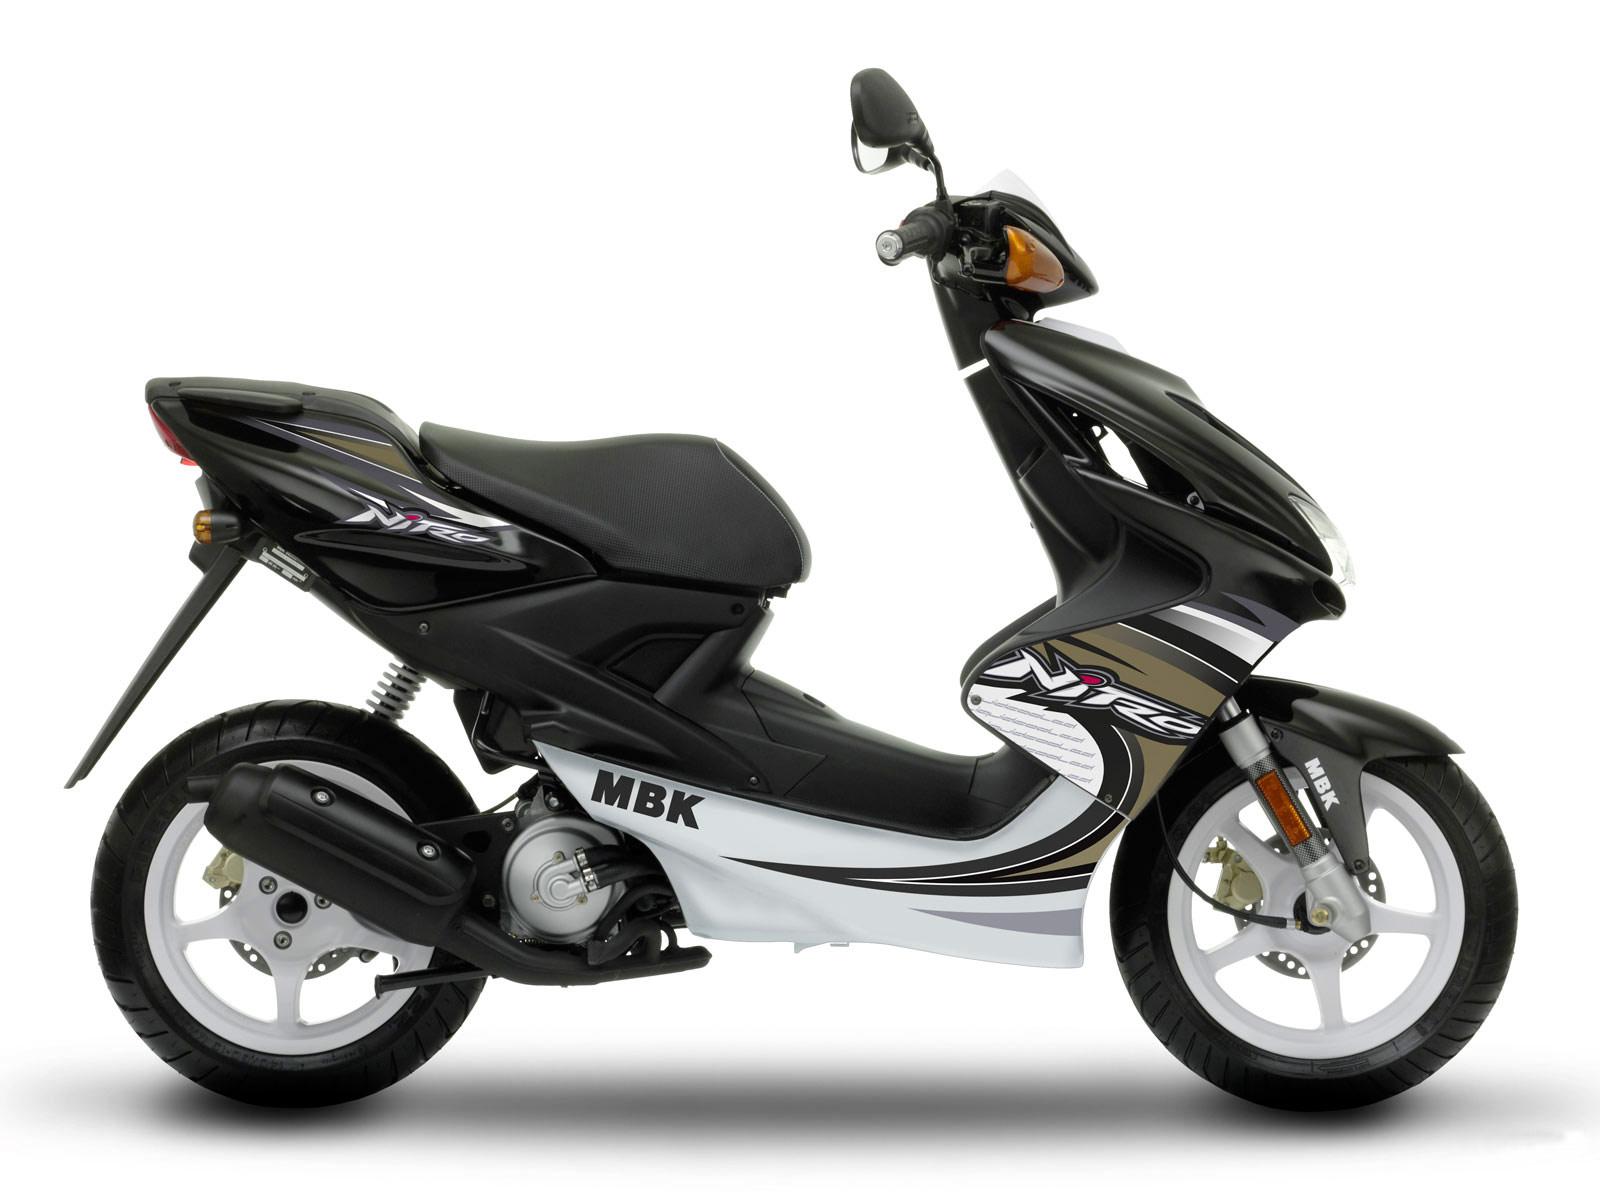 2010 Mbk Nitro Scooter Pictures Accident Lawyers Info